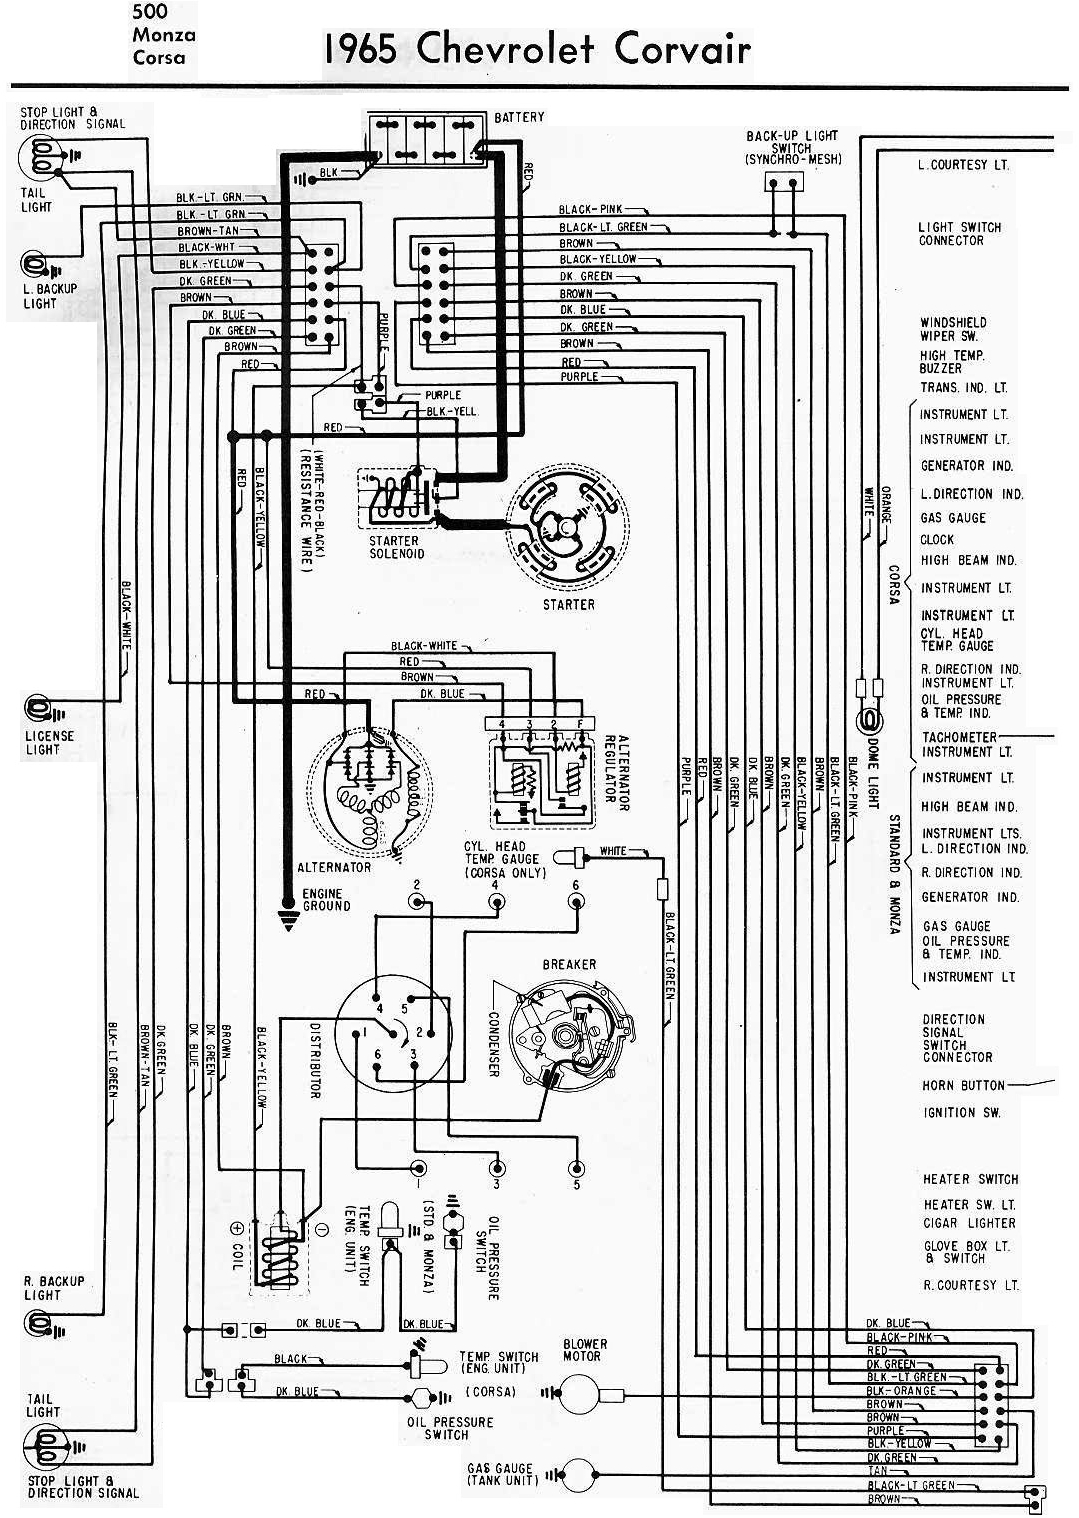 1965 Chevrolet Corvair Electrical Wiring Diagram | All